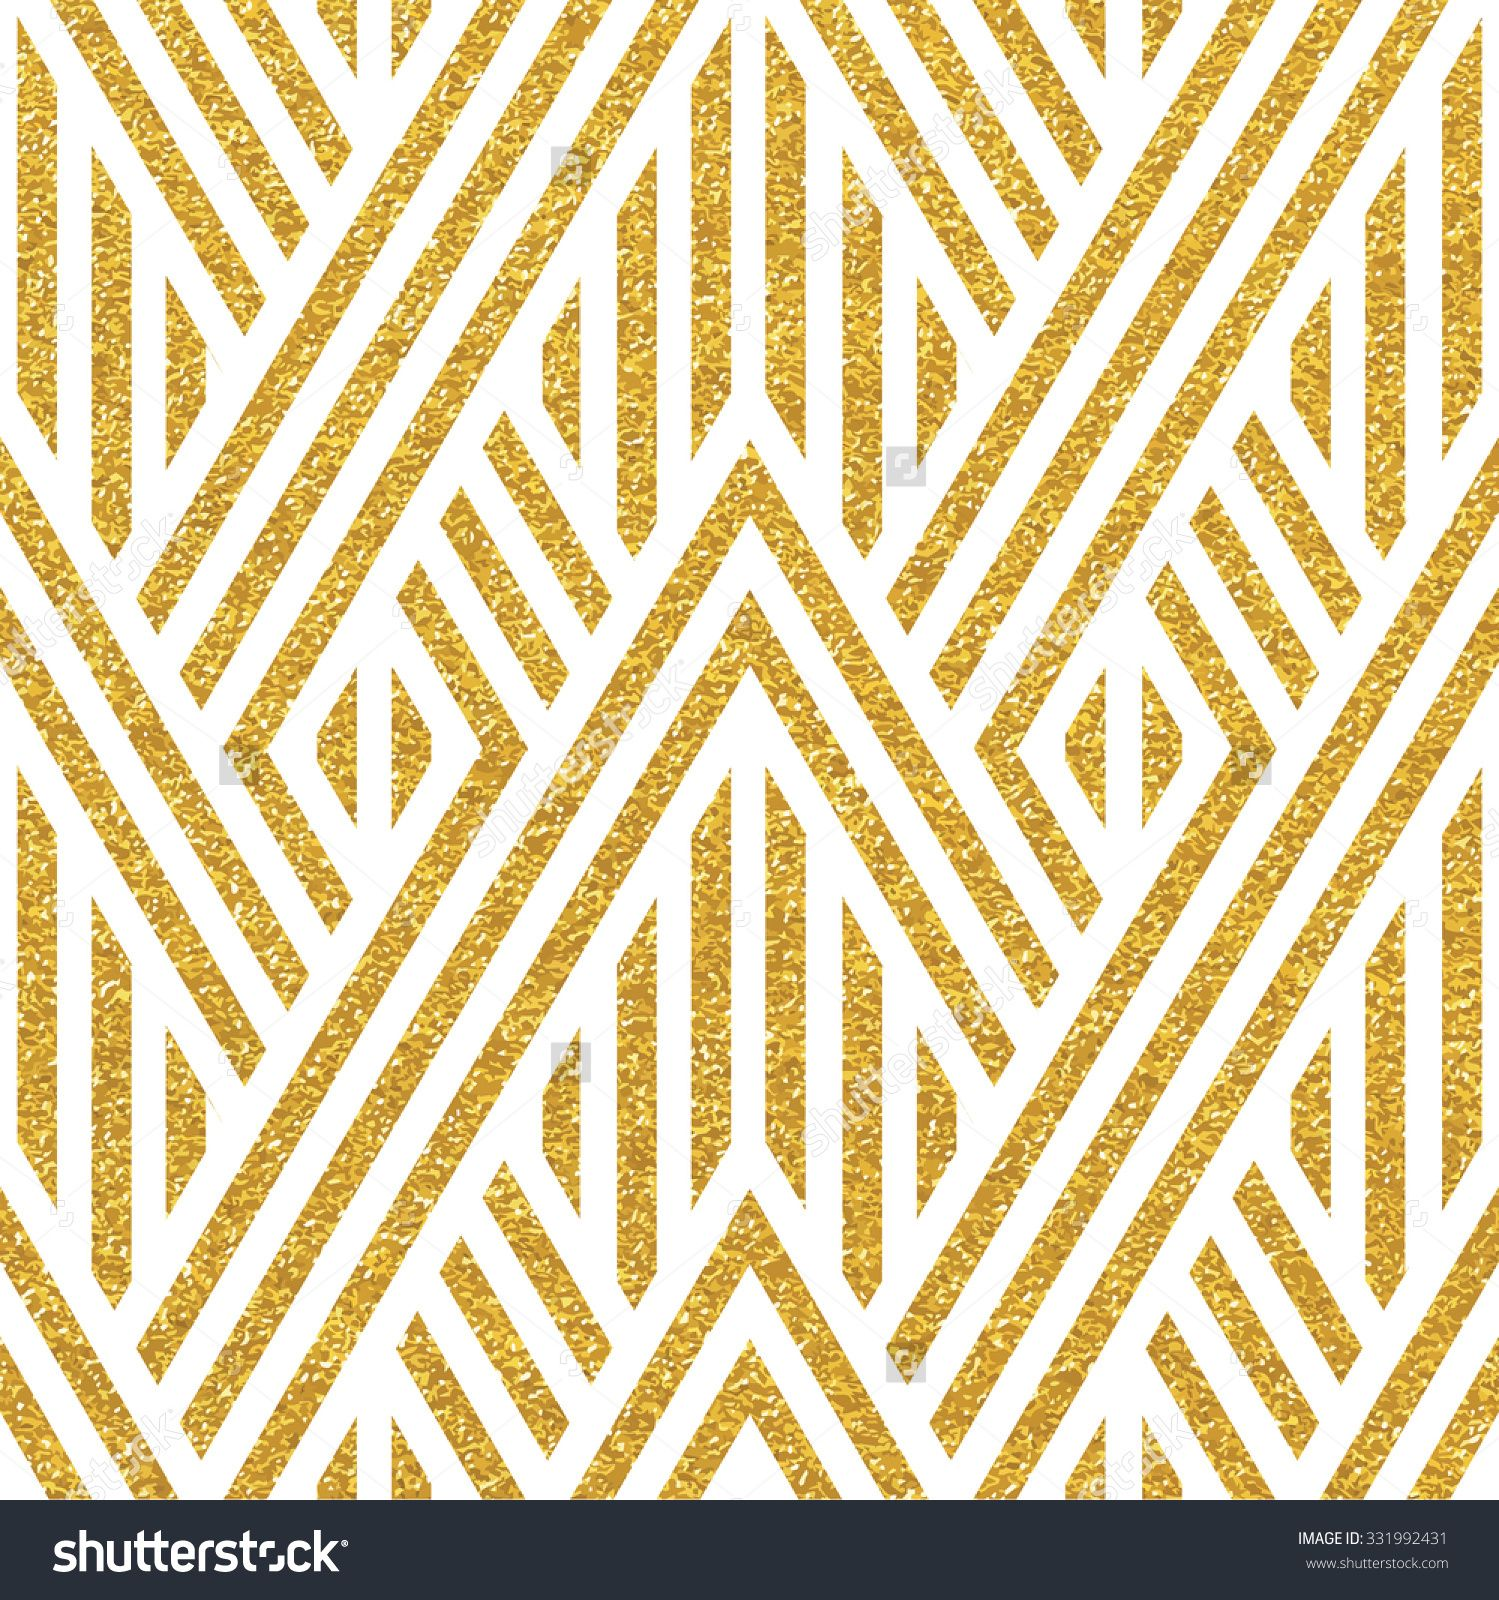 Geometric striped ornament. Vector gold seamless patterns